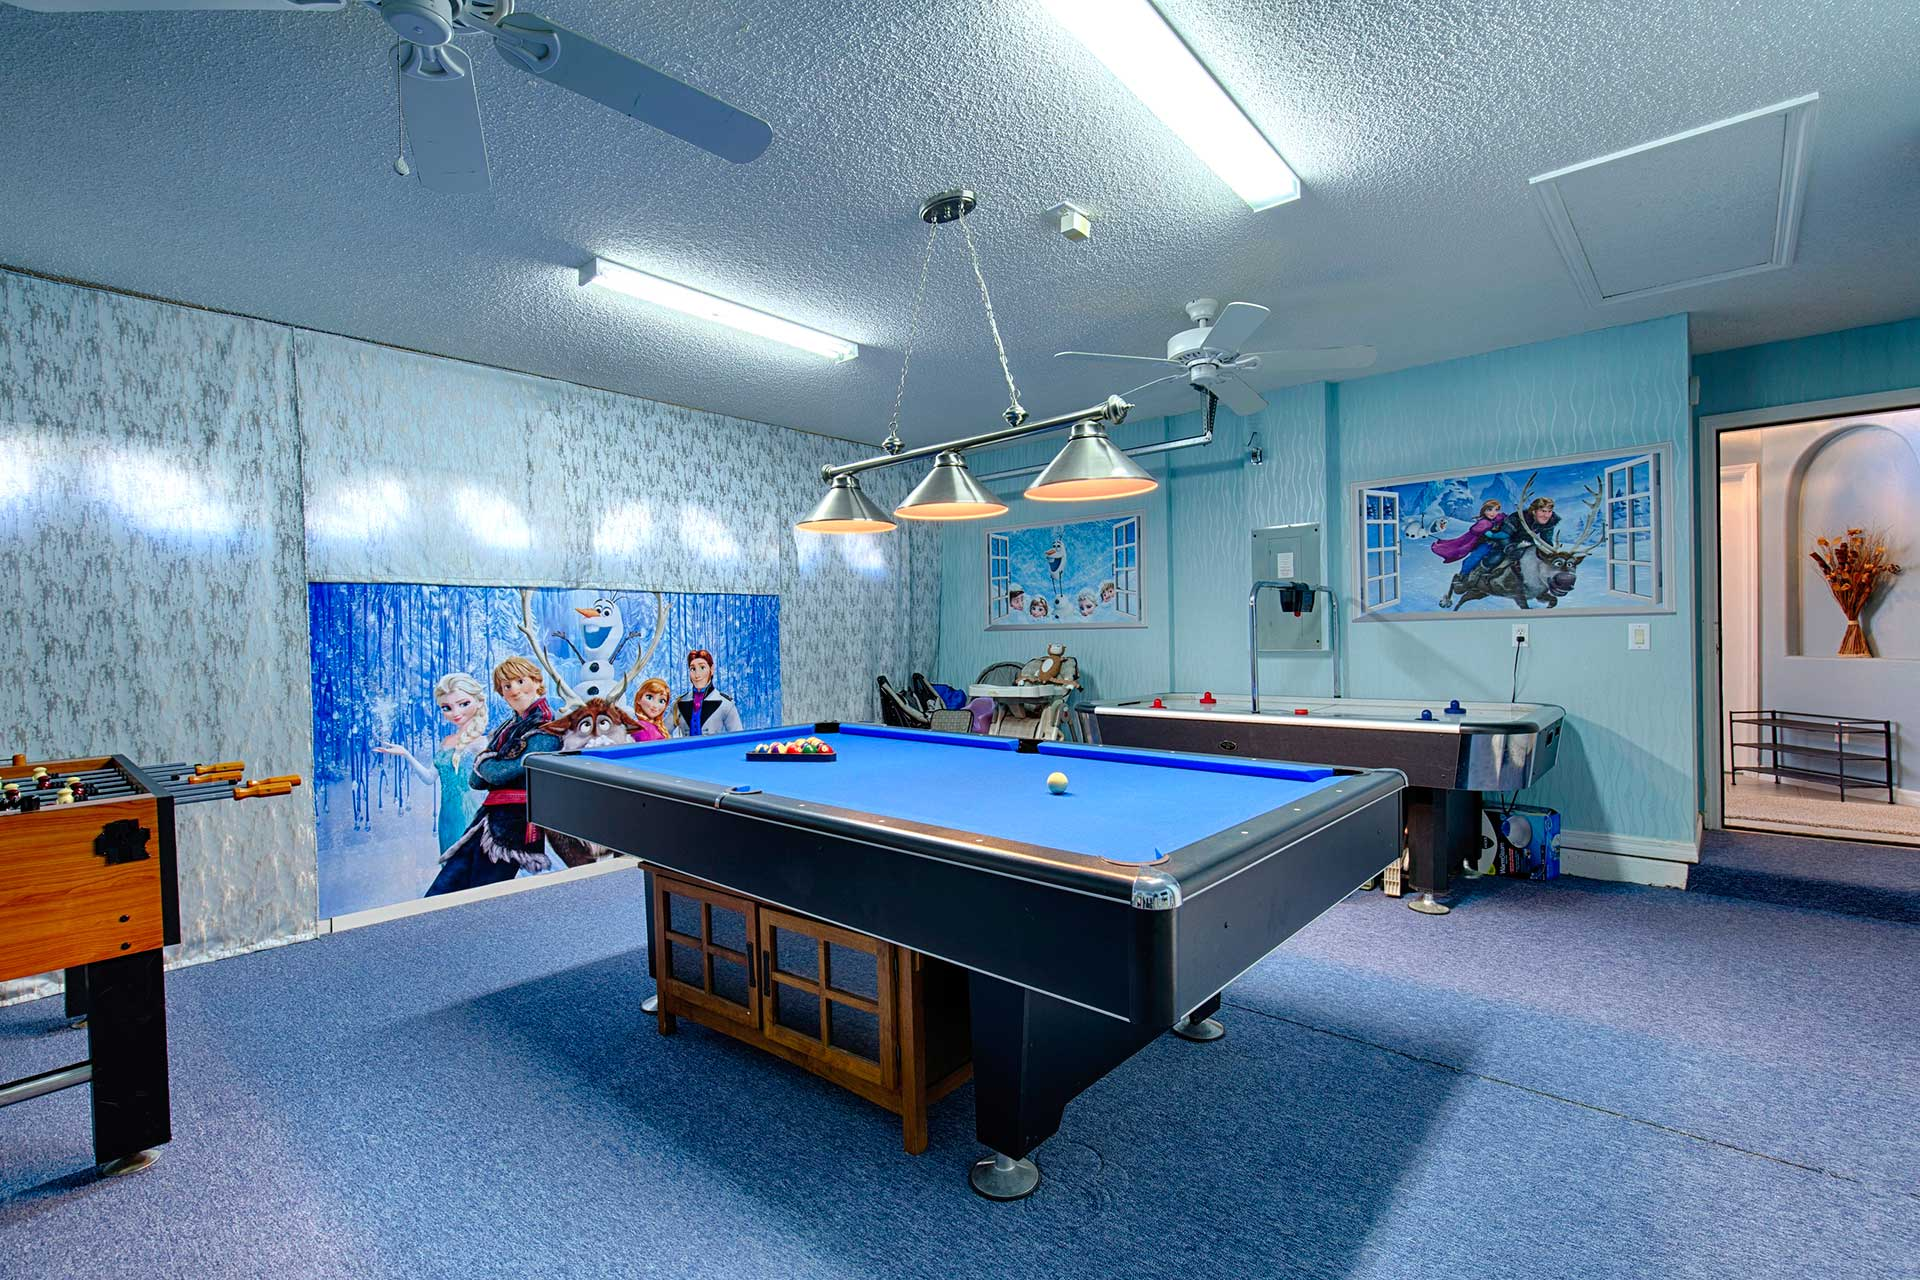 Slate Pool Table Orlando Rental